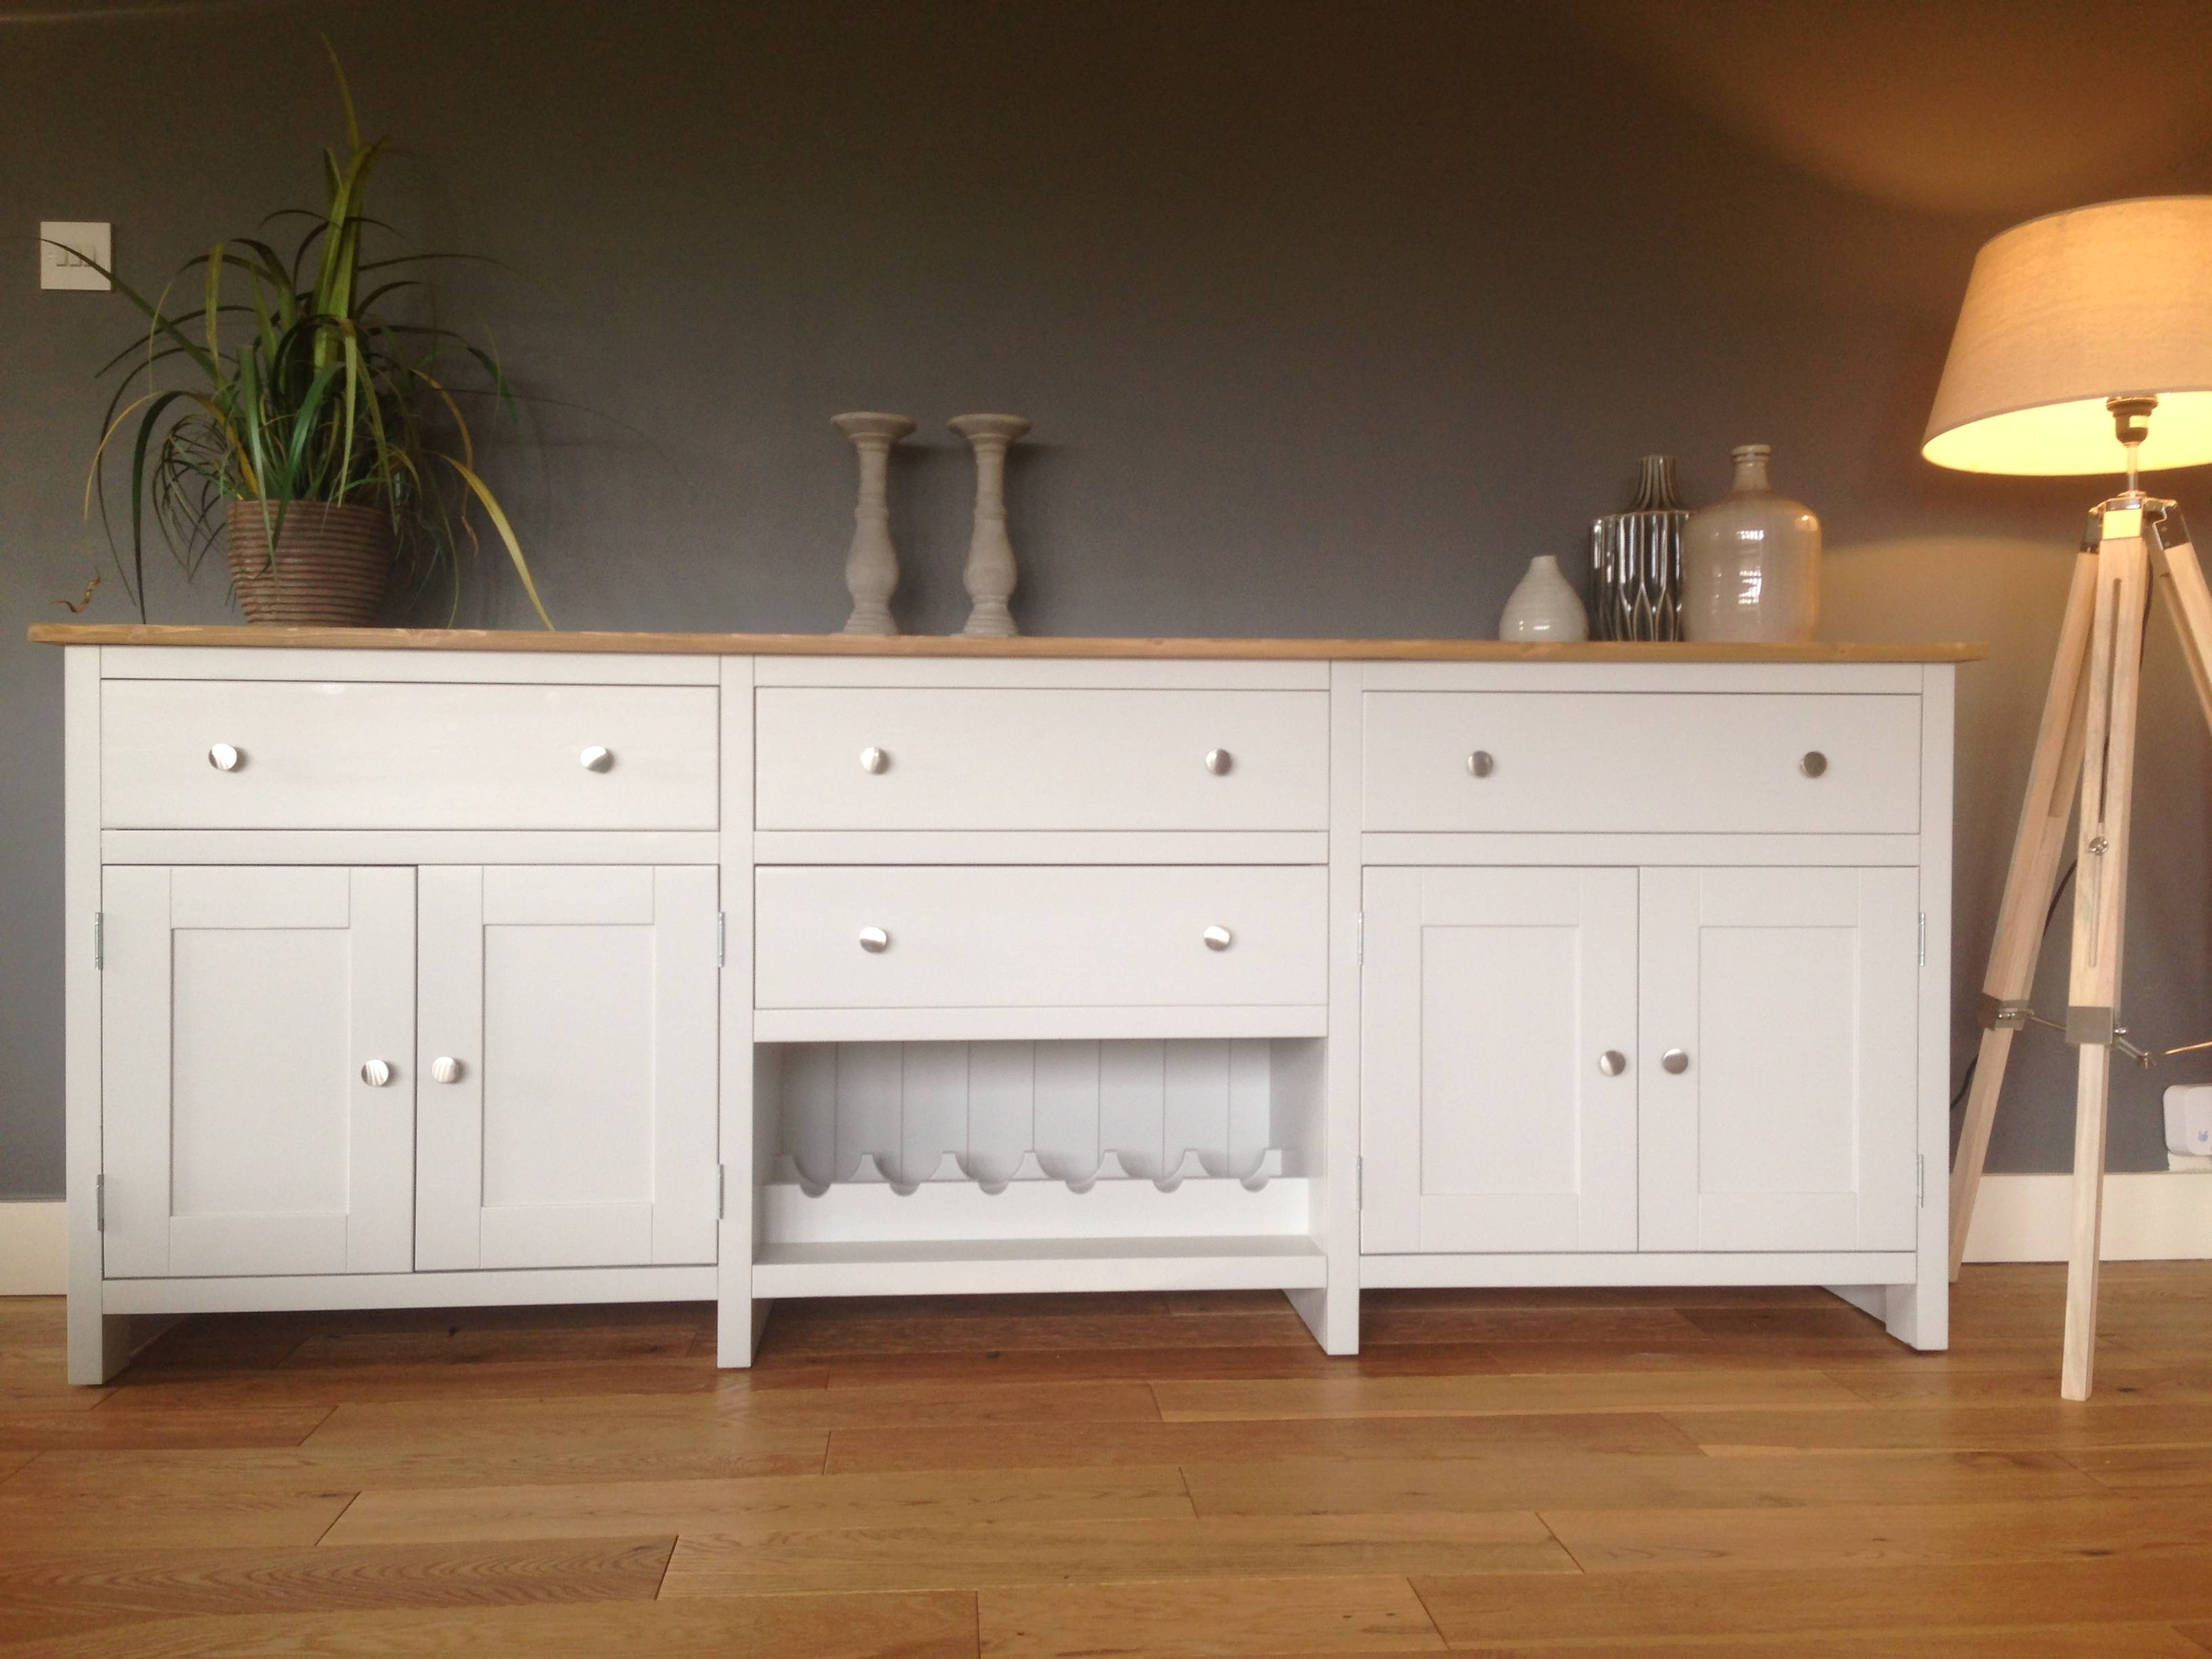 7ft Solid Pine Sideboard With Wine Rack – Nest At Number 20 Within Pine Sideboards (View 11 of 15)